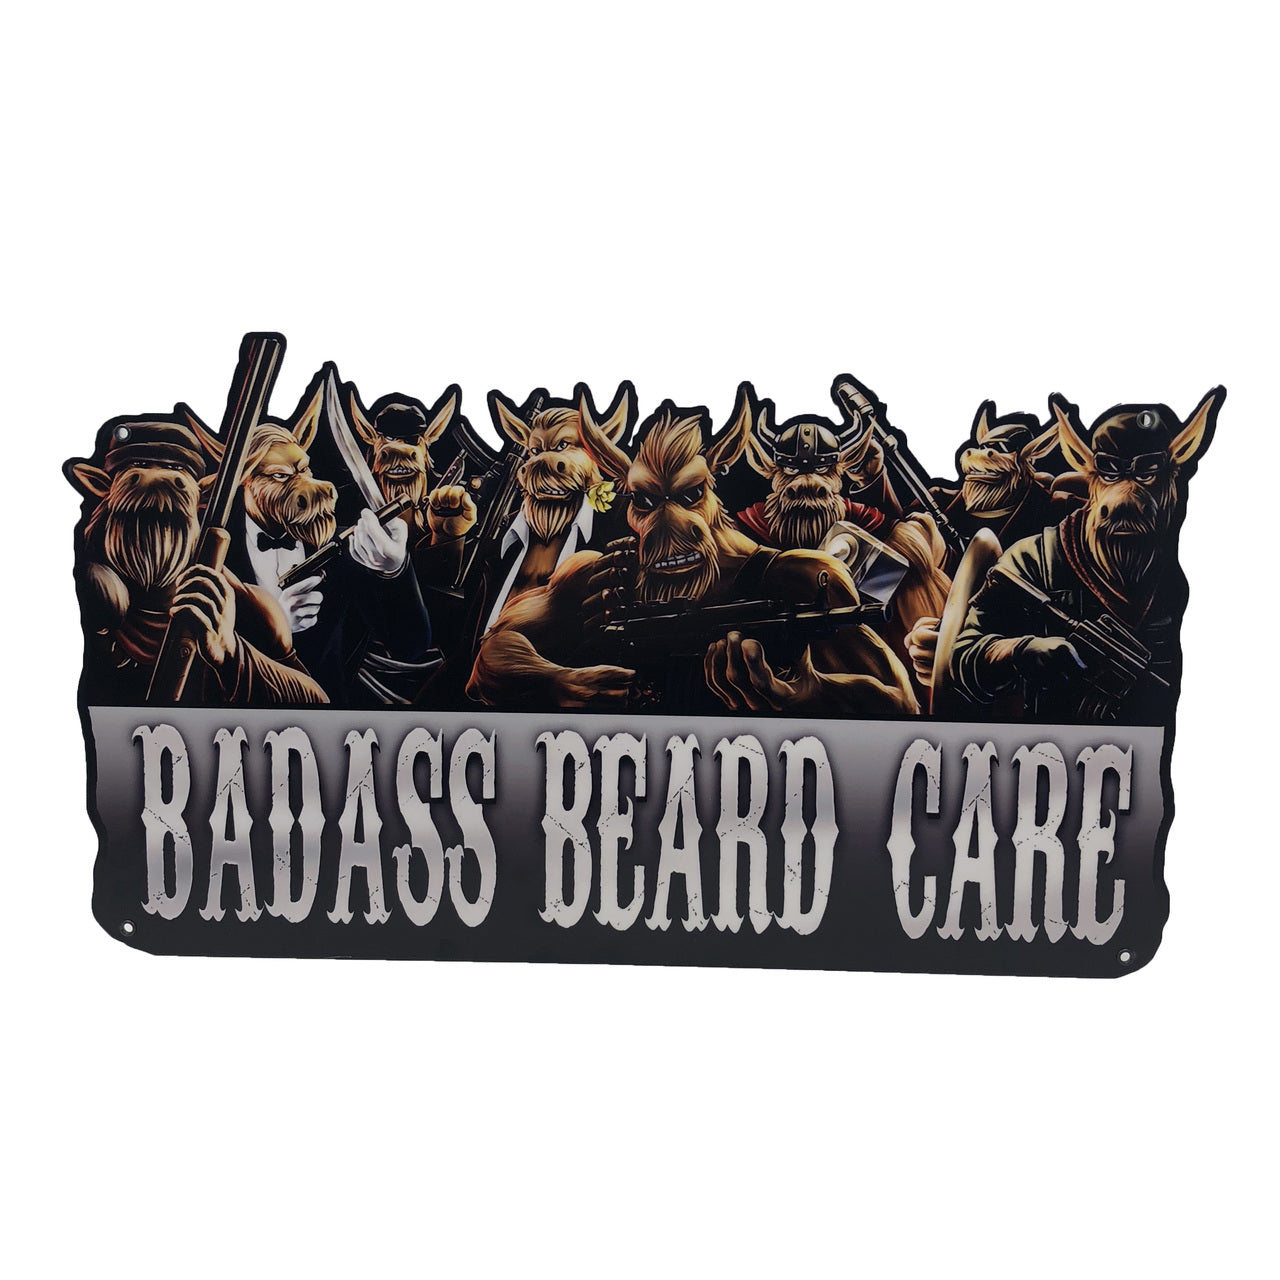 badass beard care garage sign